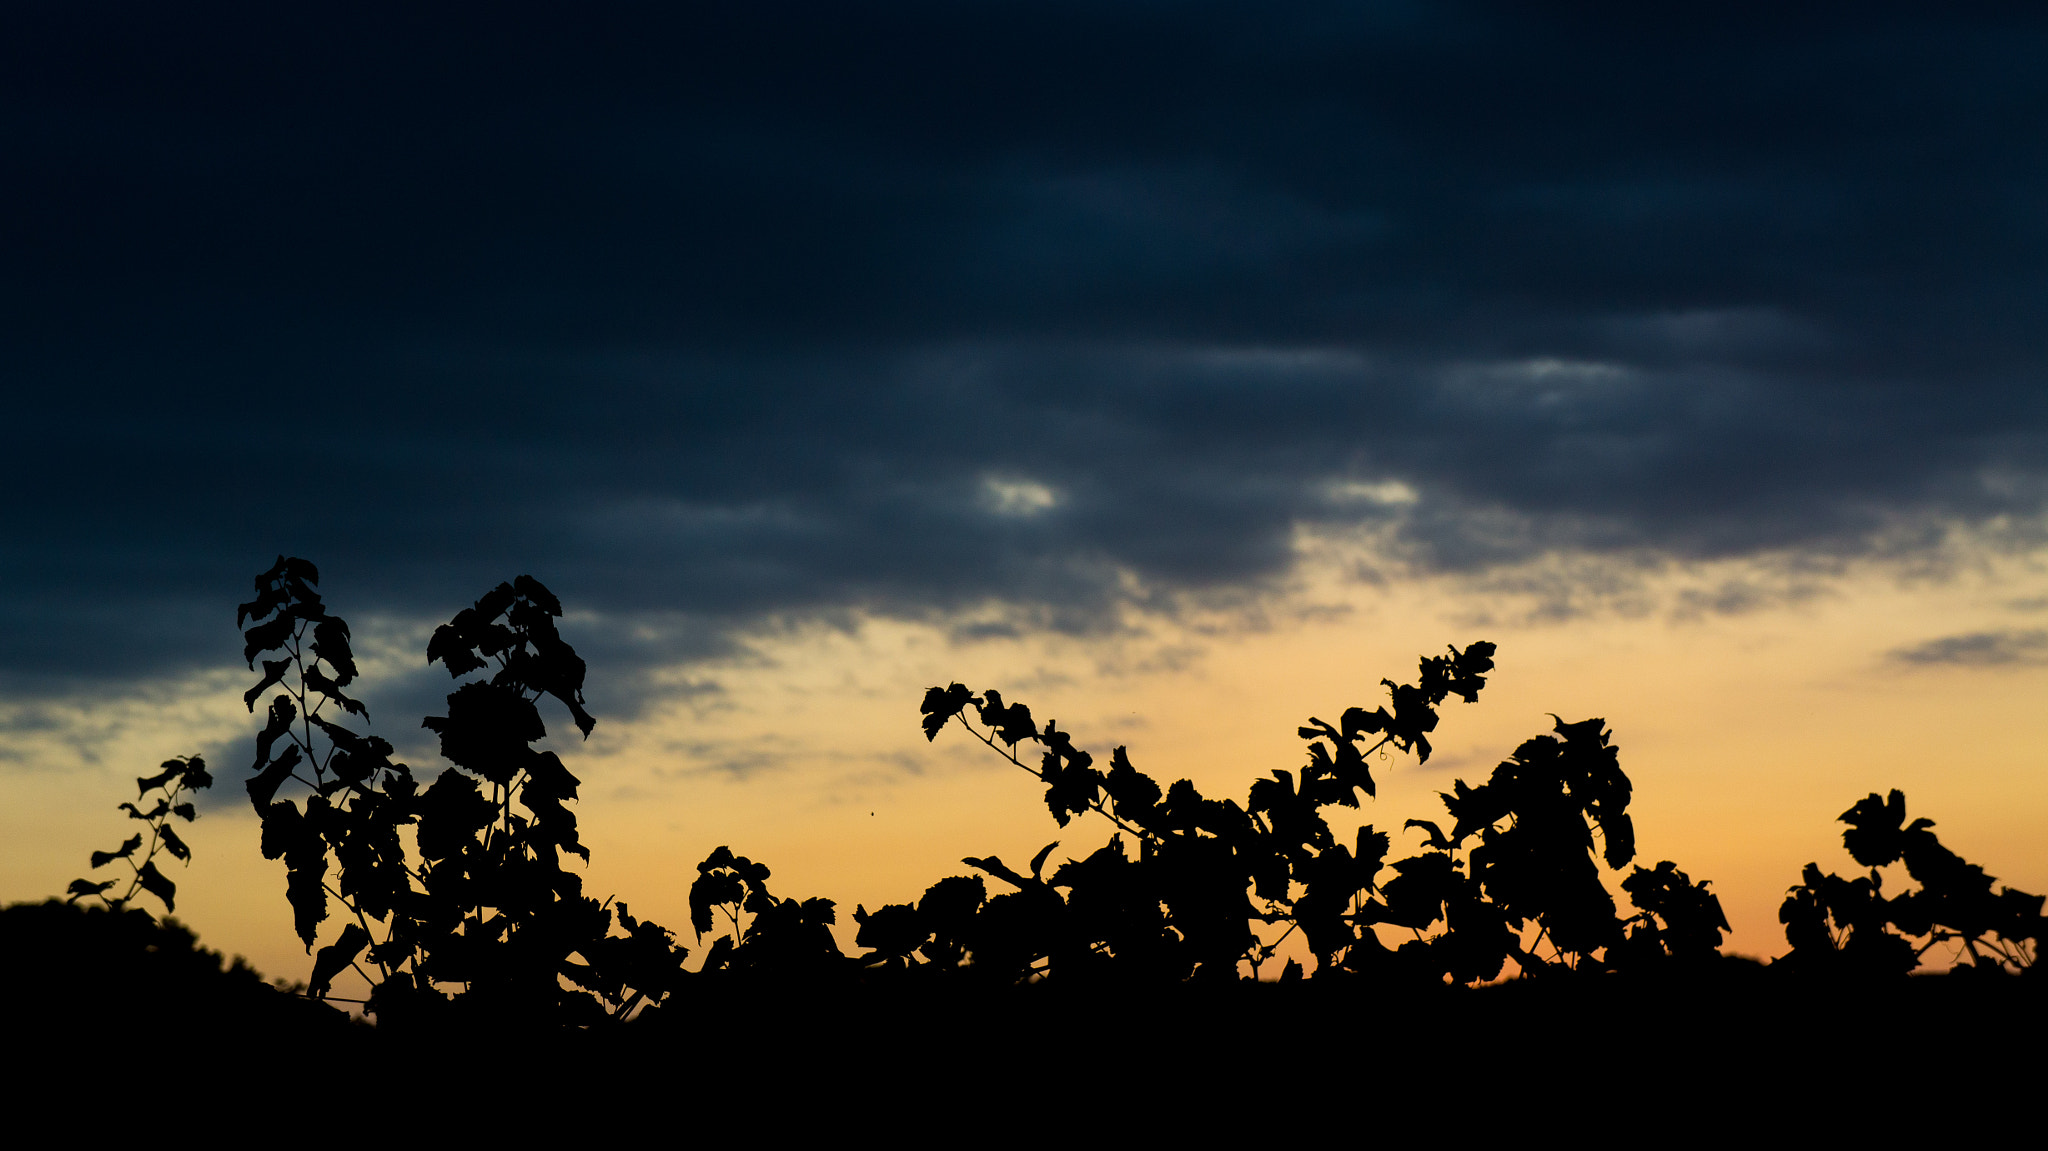 Photograph Sunset over a wineyard by Lluís Grau on 500px